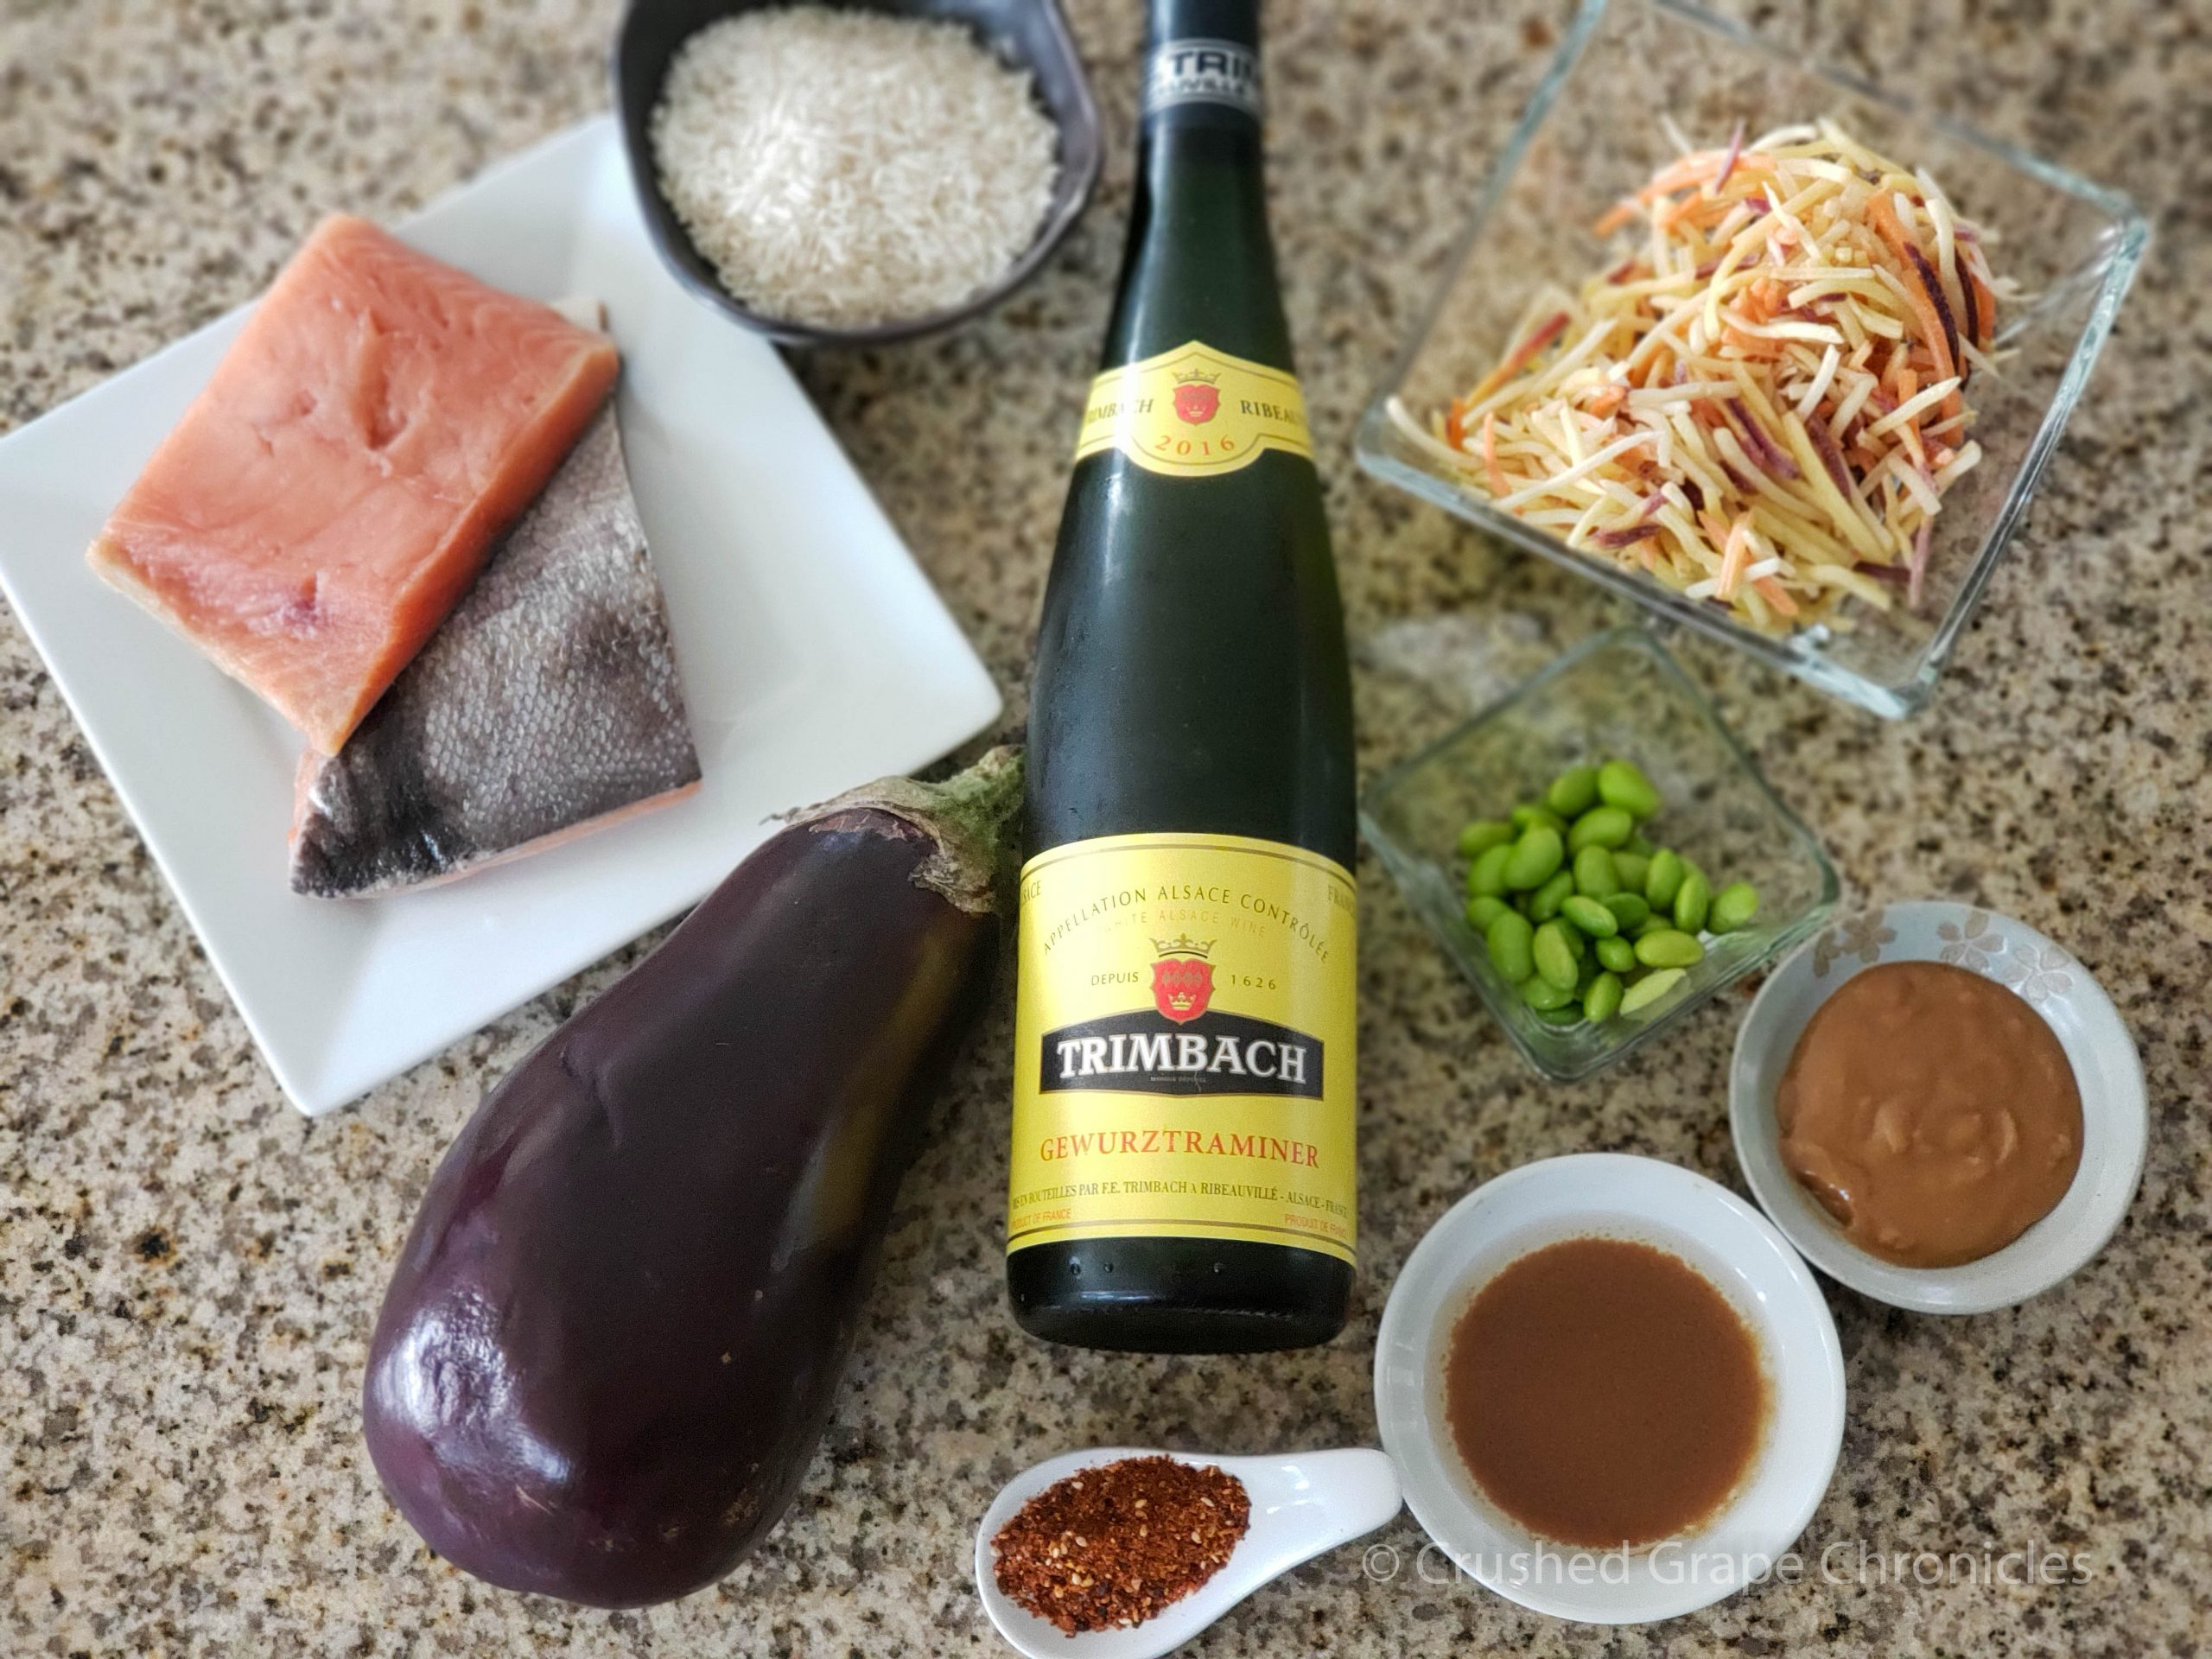 Ingredients for the Roasted togarashi salmon with miso-glazed eggplant to pair with the Trimbach Gewurztraminer